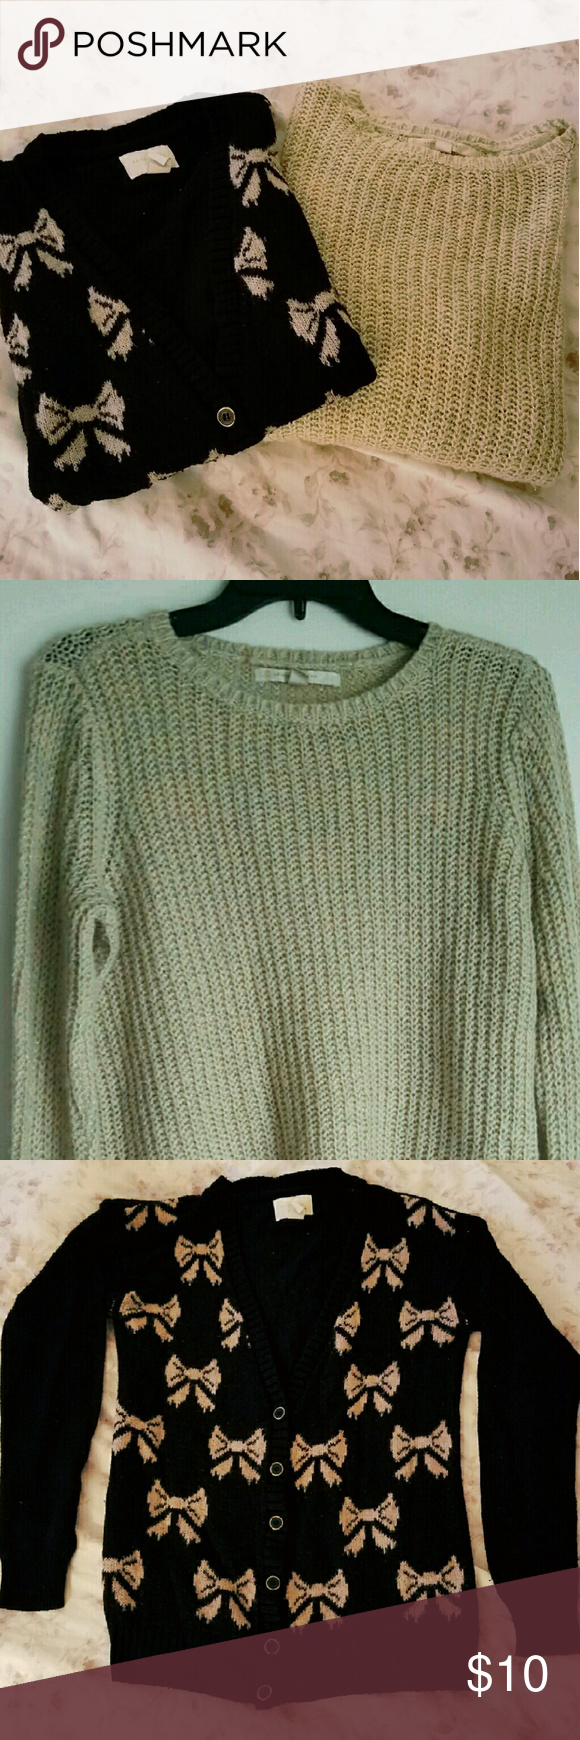 Cozy Winter sweater bundle! Lovely sweater bundle  [Items] 1. Small forever 21 bow cardigan. good condition. 2. Size small pastels comfy sweater. in good conditon  Price is a discounted price for both items.  If you would like to purchase items separatley u can do so by scrolling down my shop page. Items are listed separately at their original selling price. Sweaters